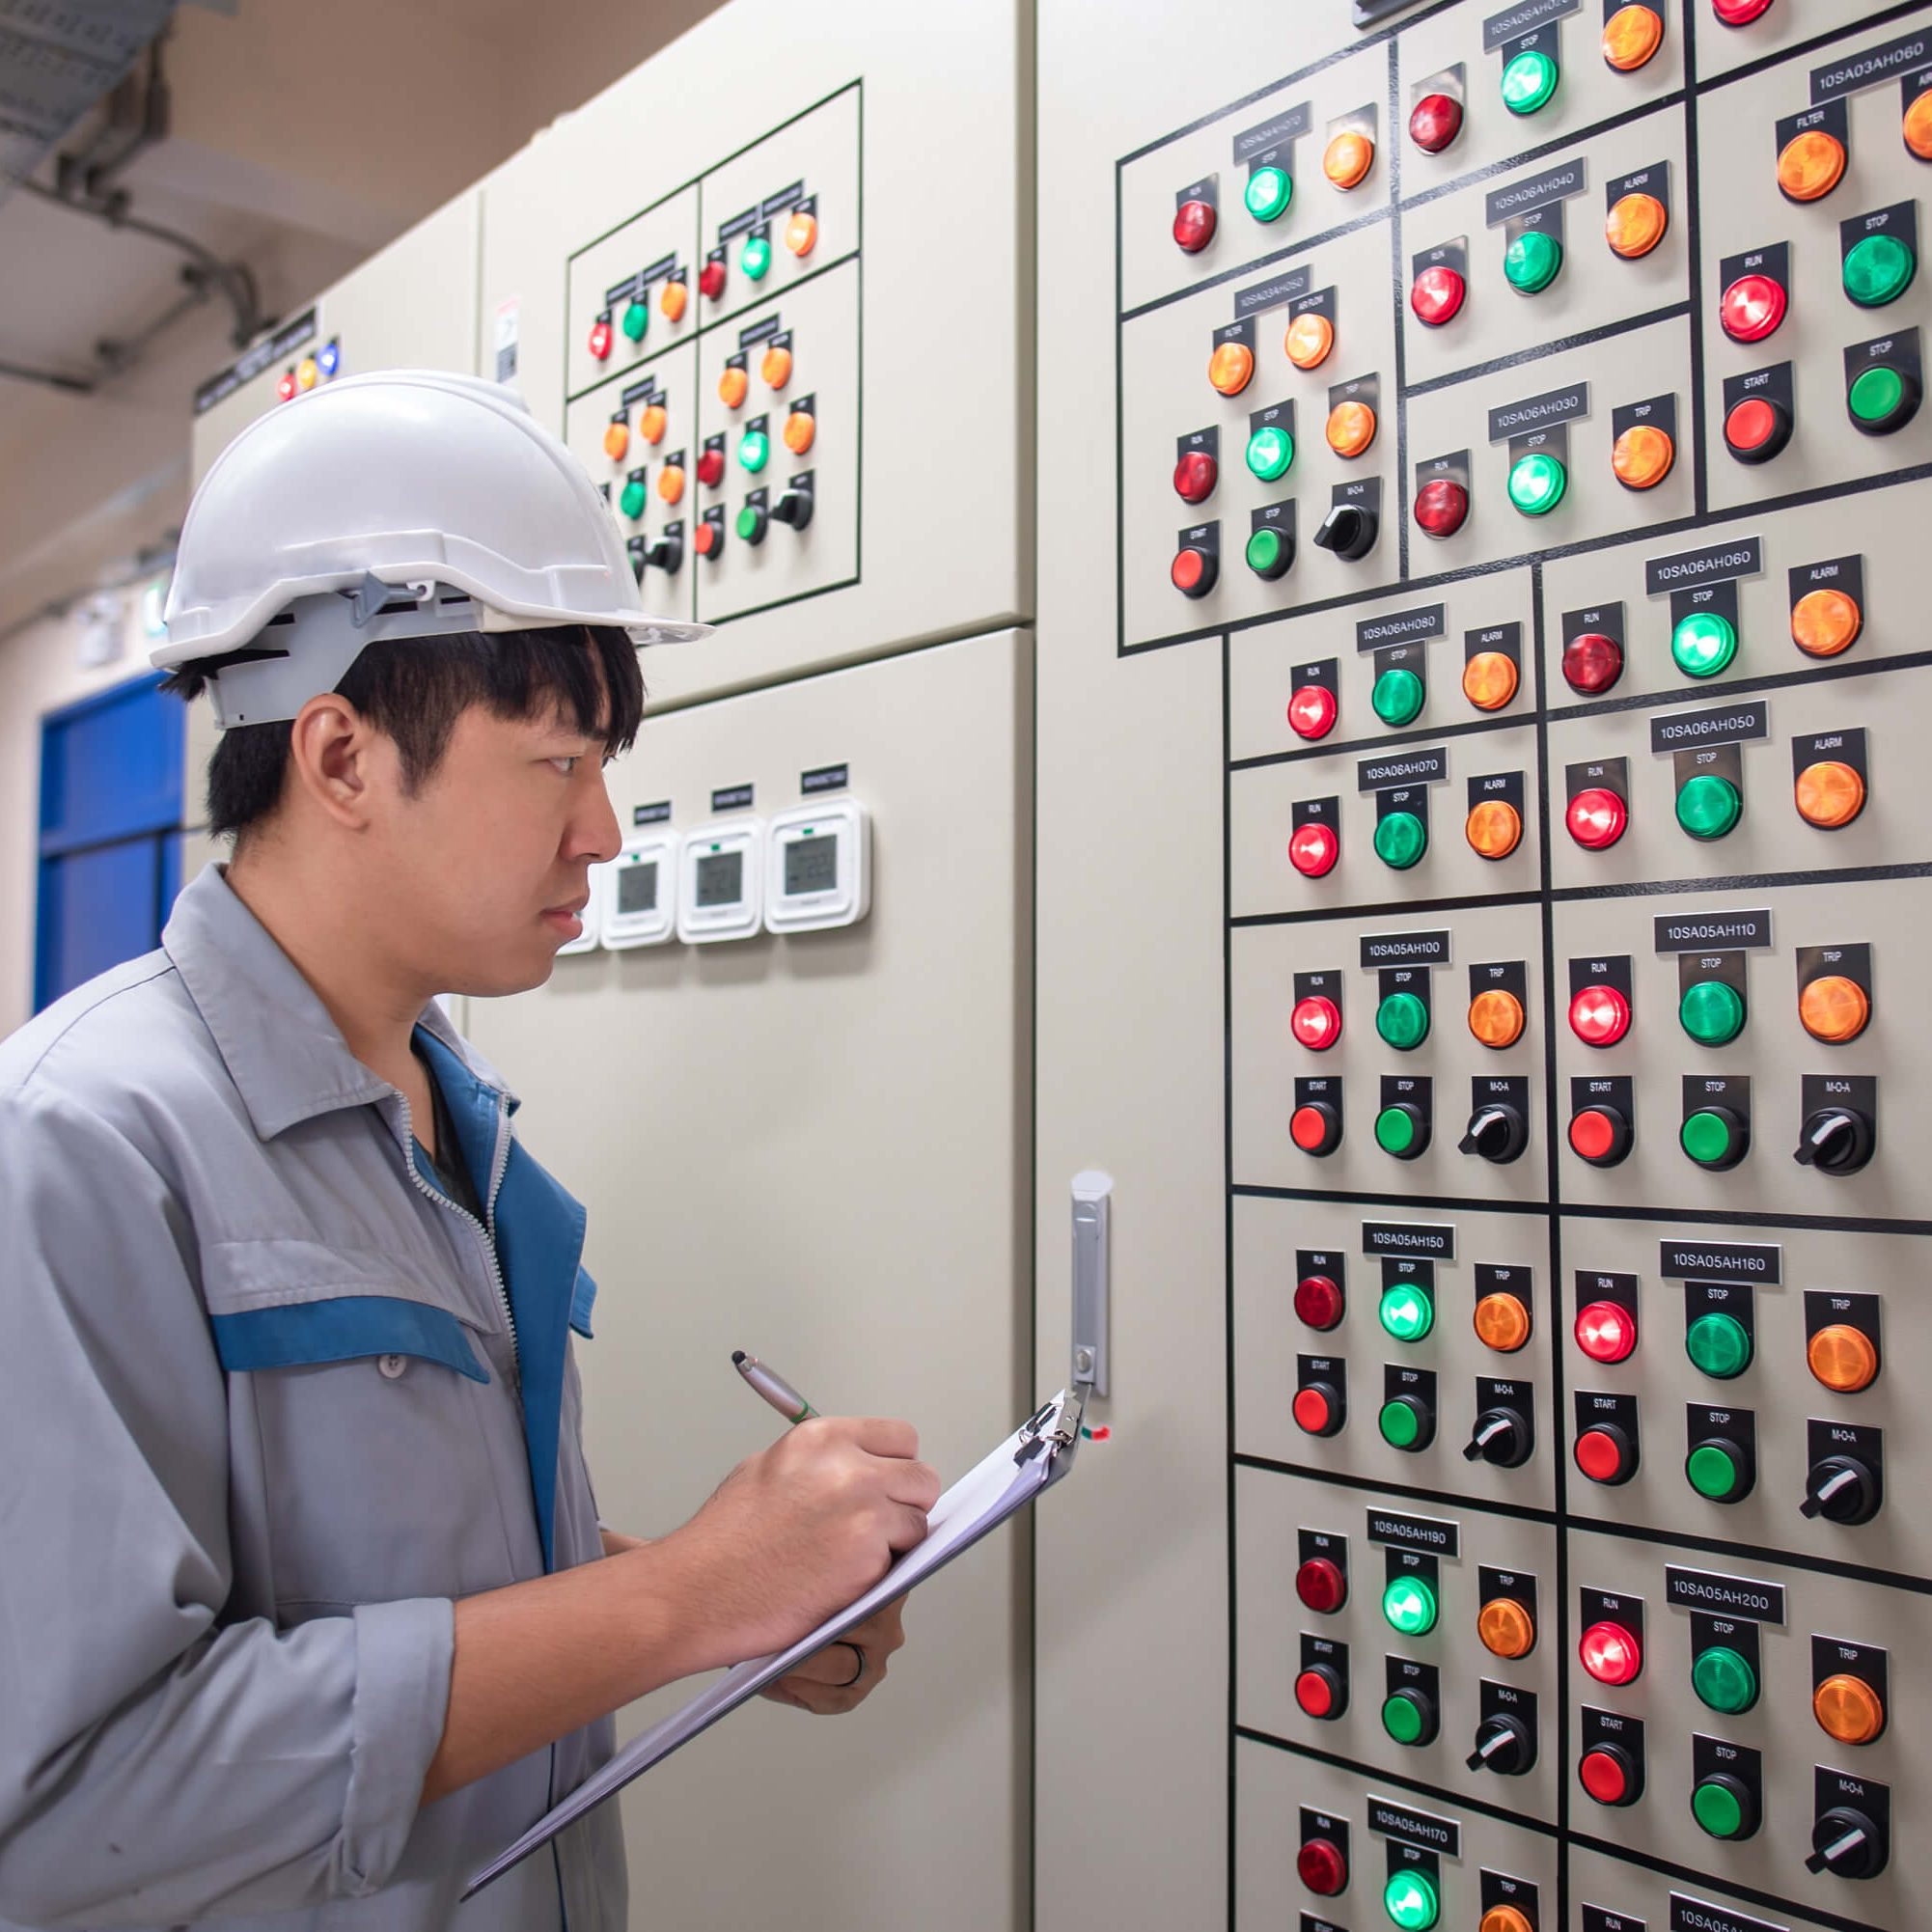 stock-photo-engineer-working-and-check-status-electrical-panel-at-hvac-room-1100341892